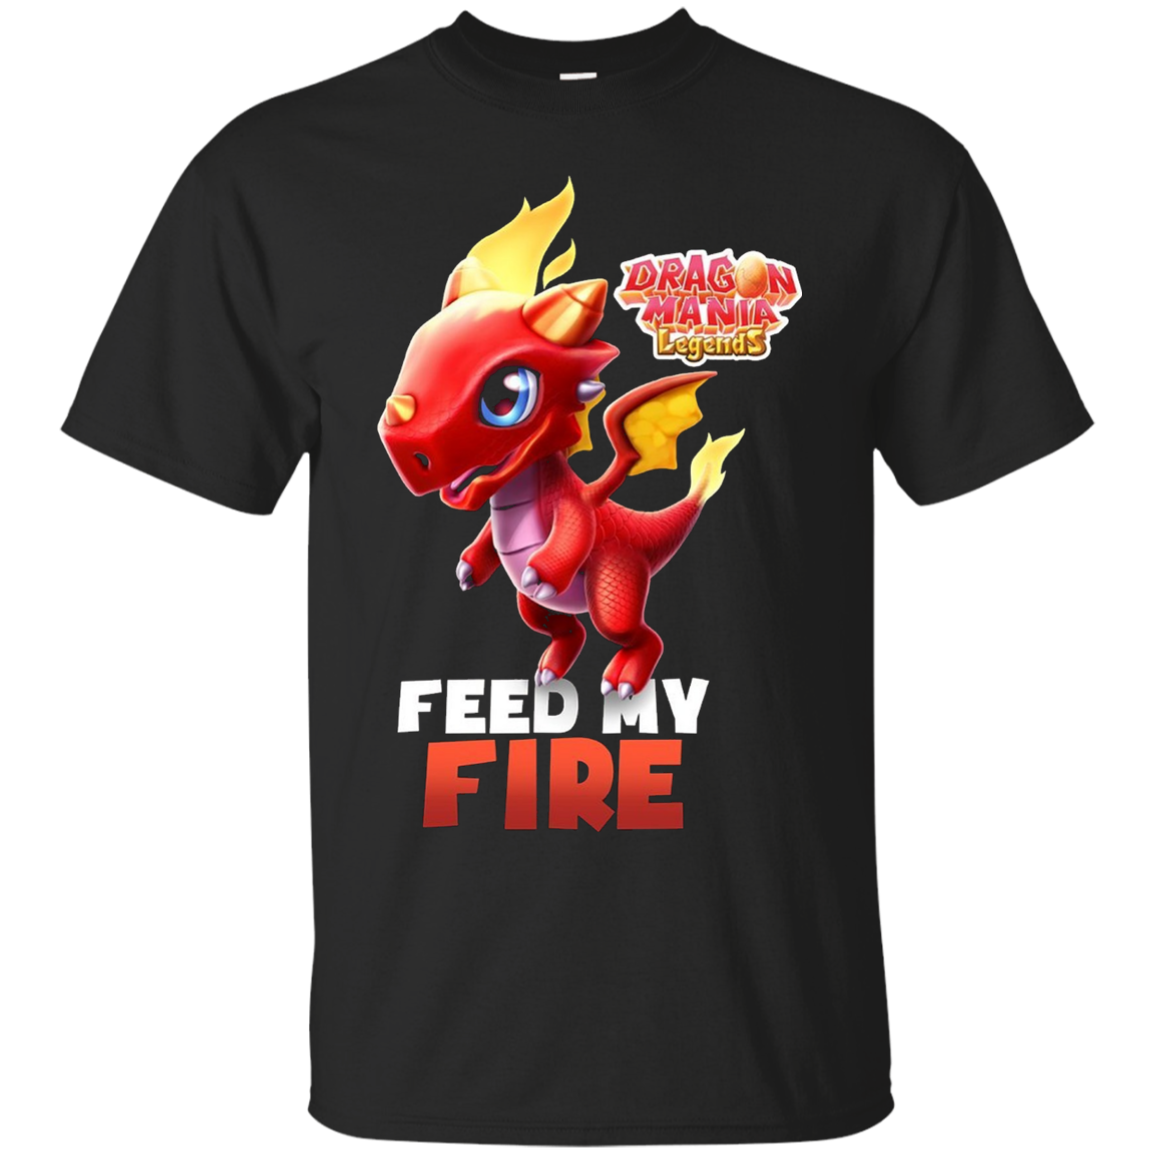 "Dragon Mania Legends ""Feed My Fire"""